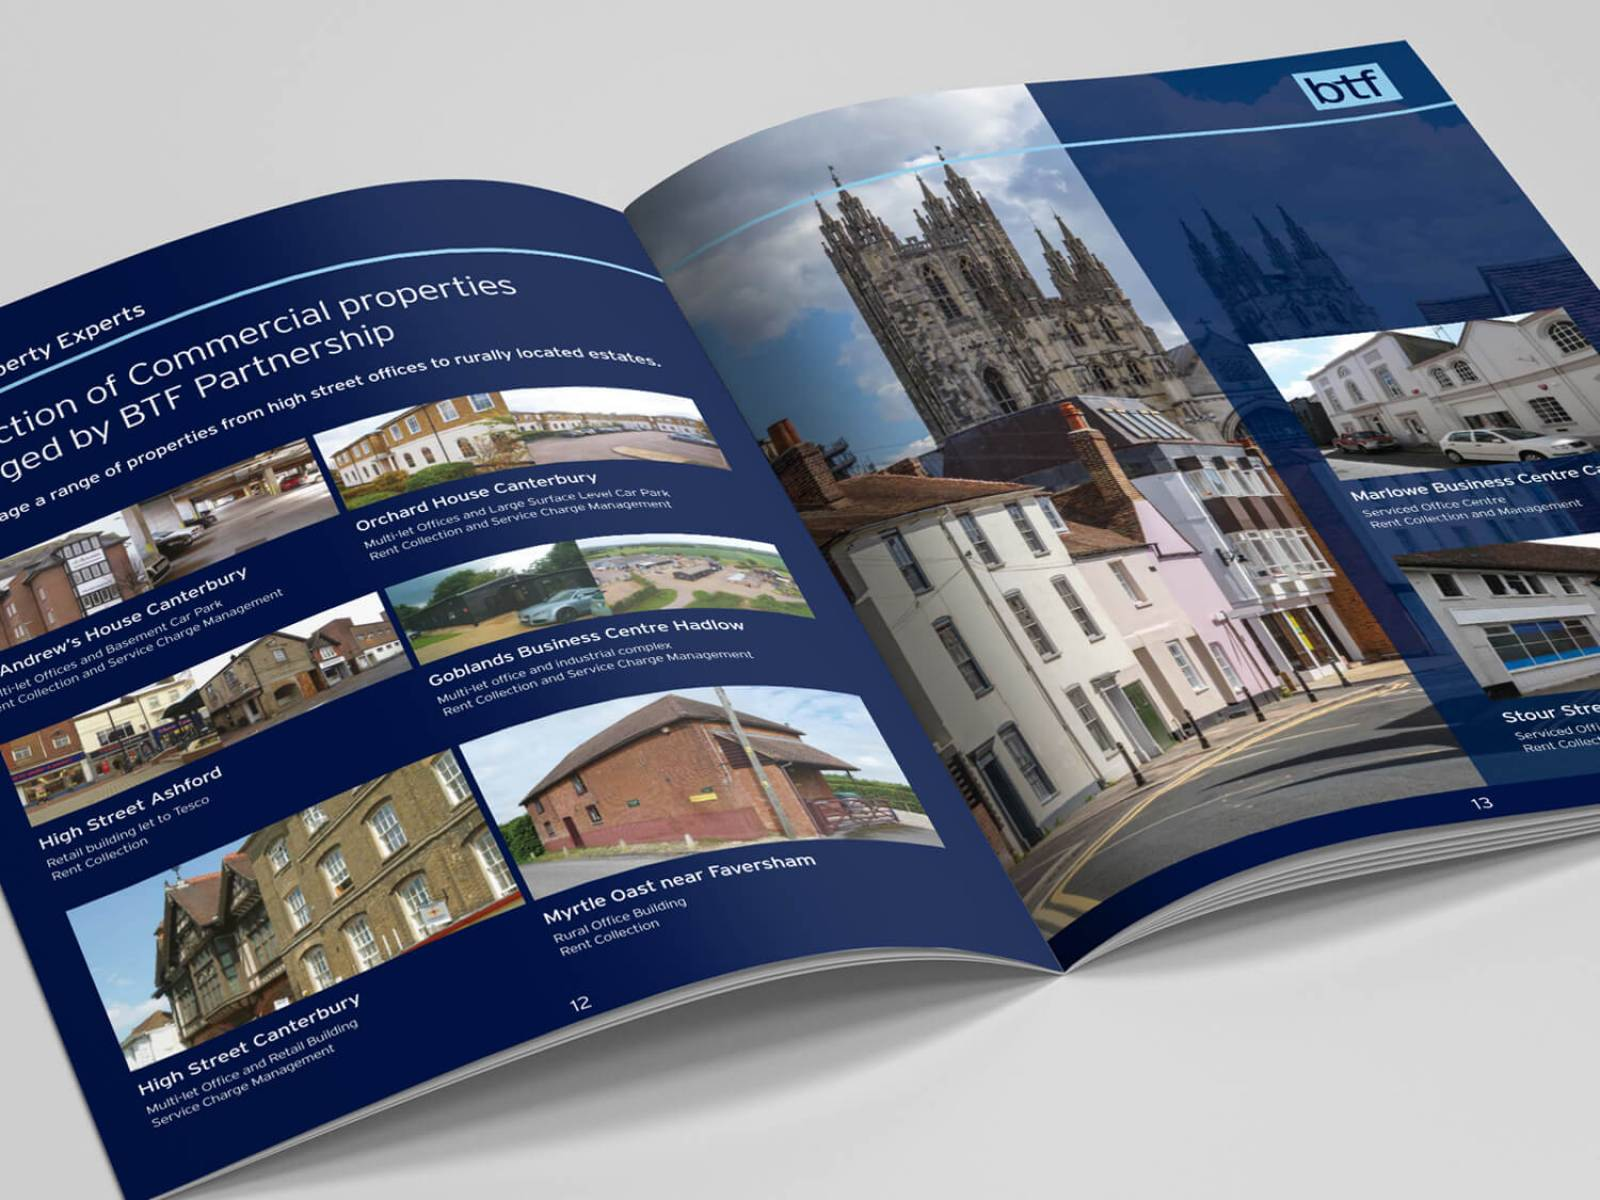 BTF-brochure-3-design-agency-graphic-design-canterbury.jpg